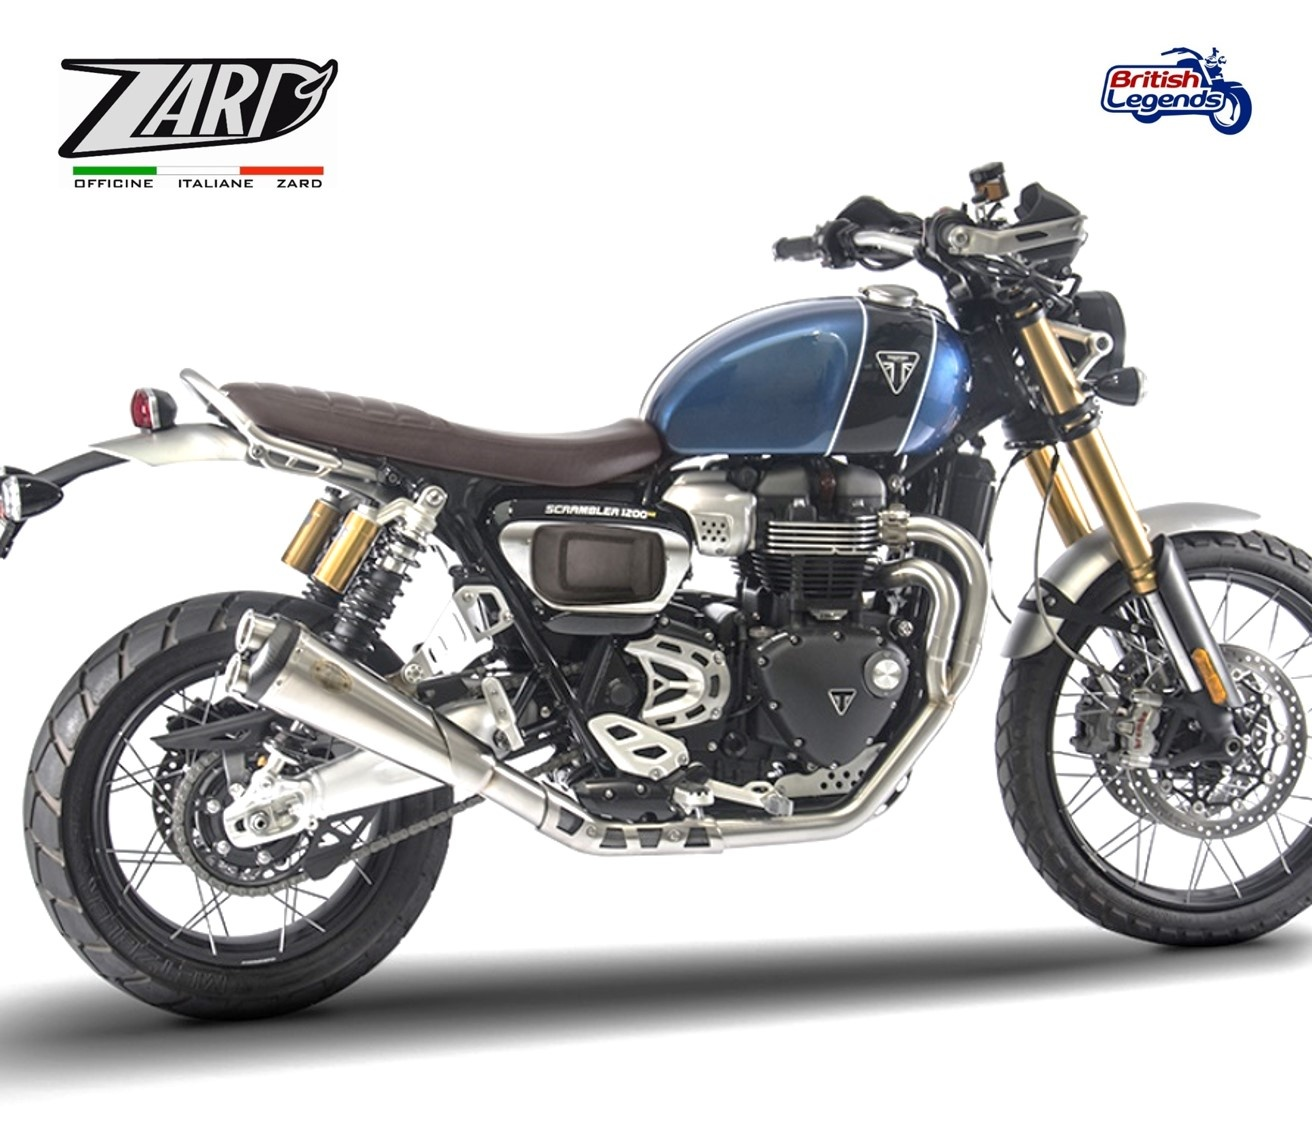 zard exhaust system for triumph